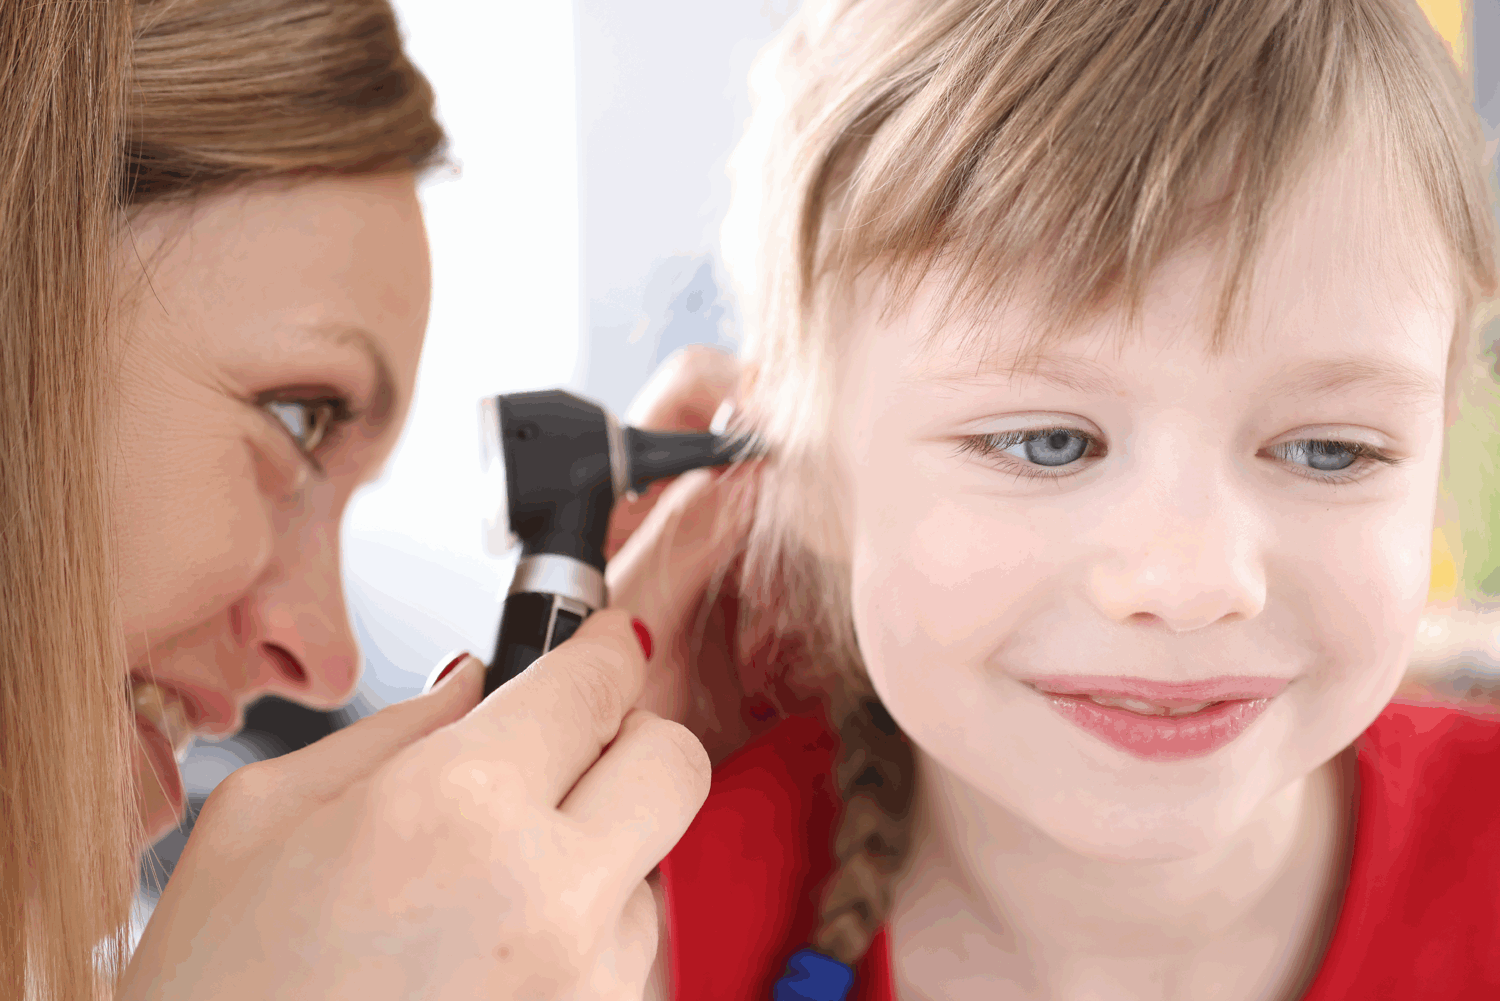 Audiologist looking at ear